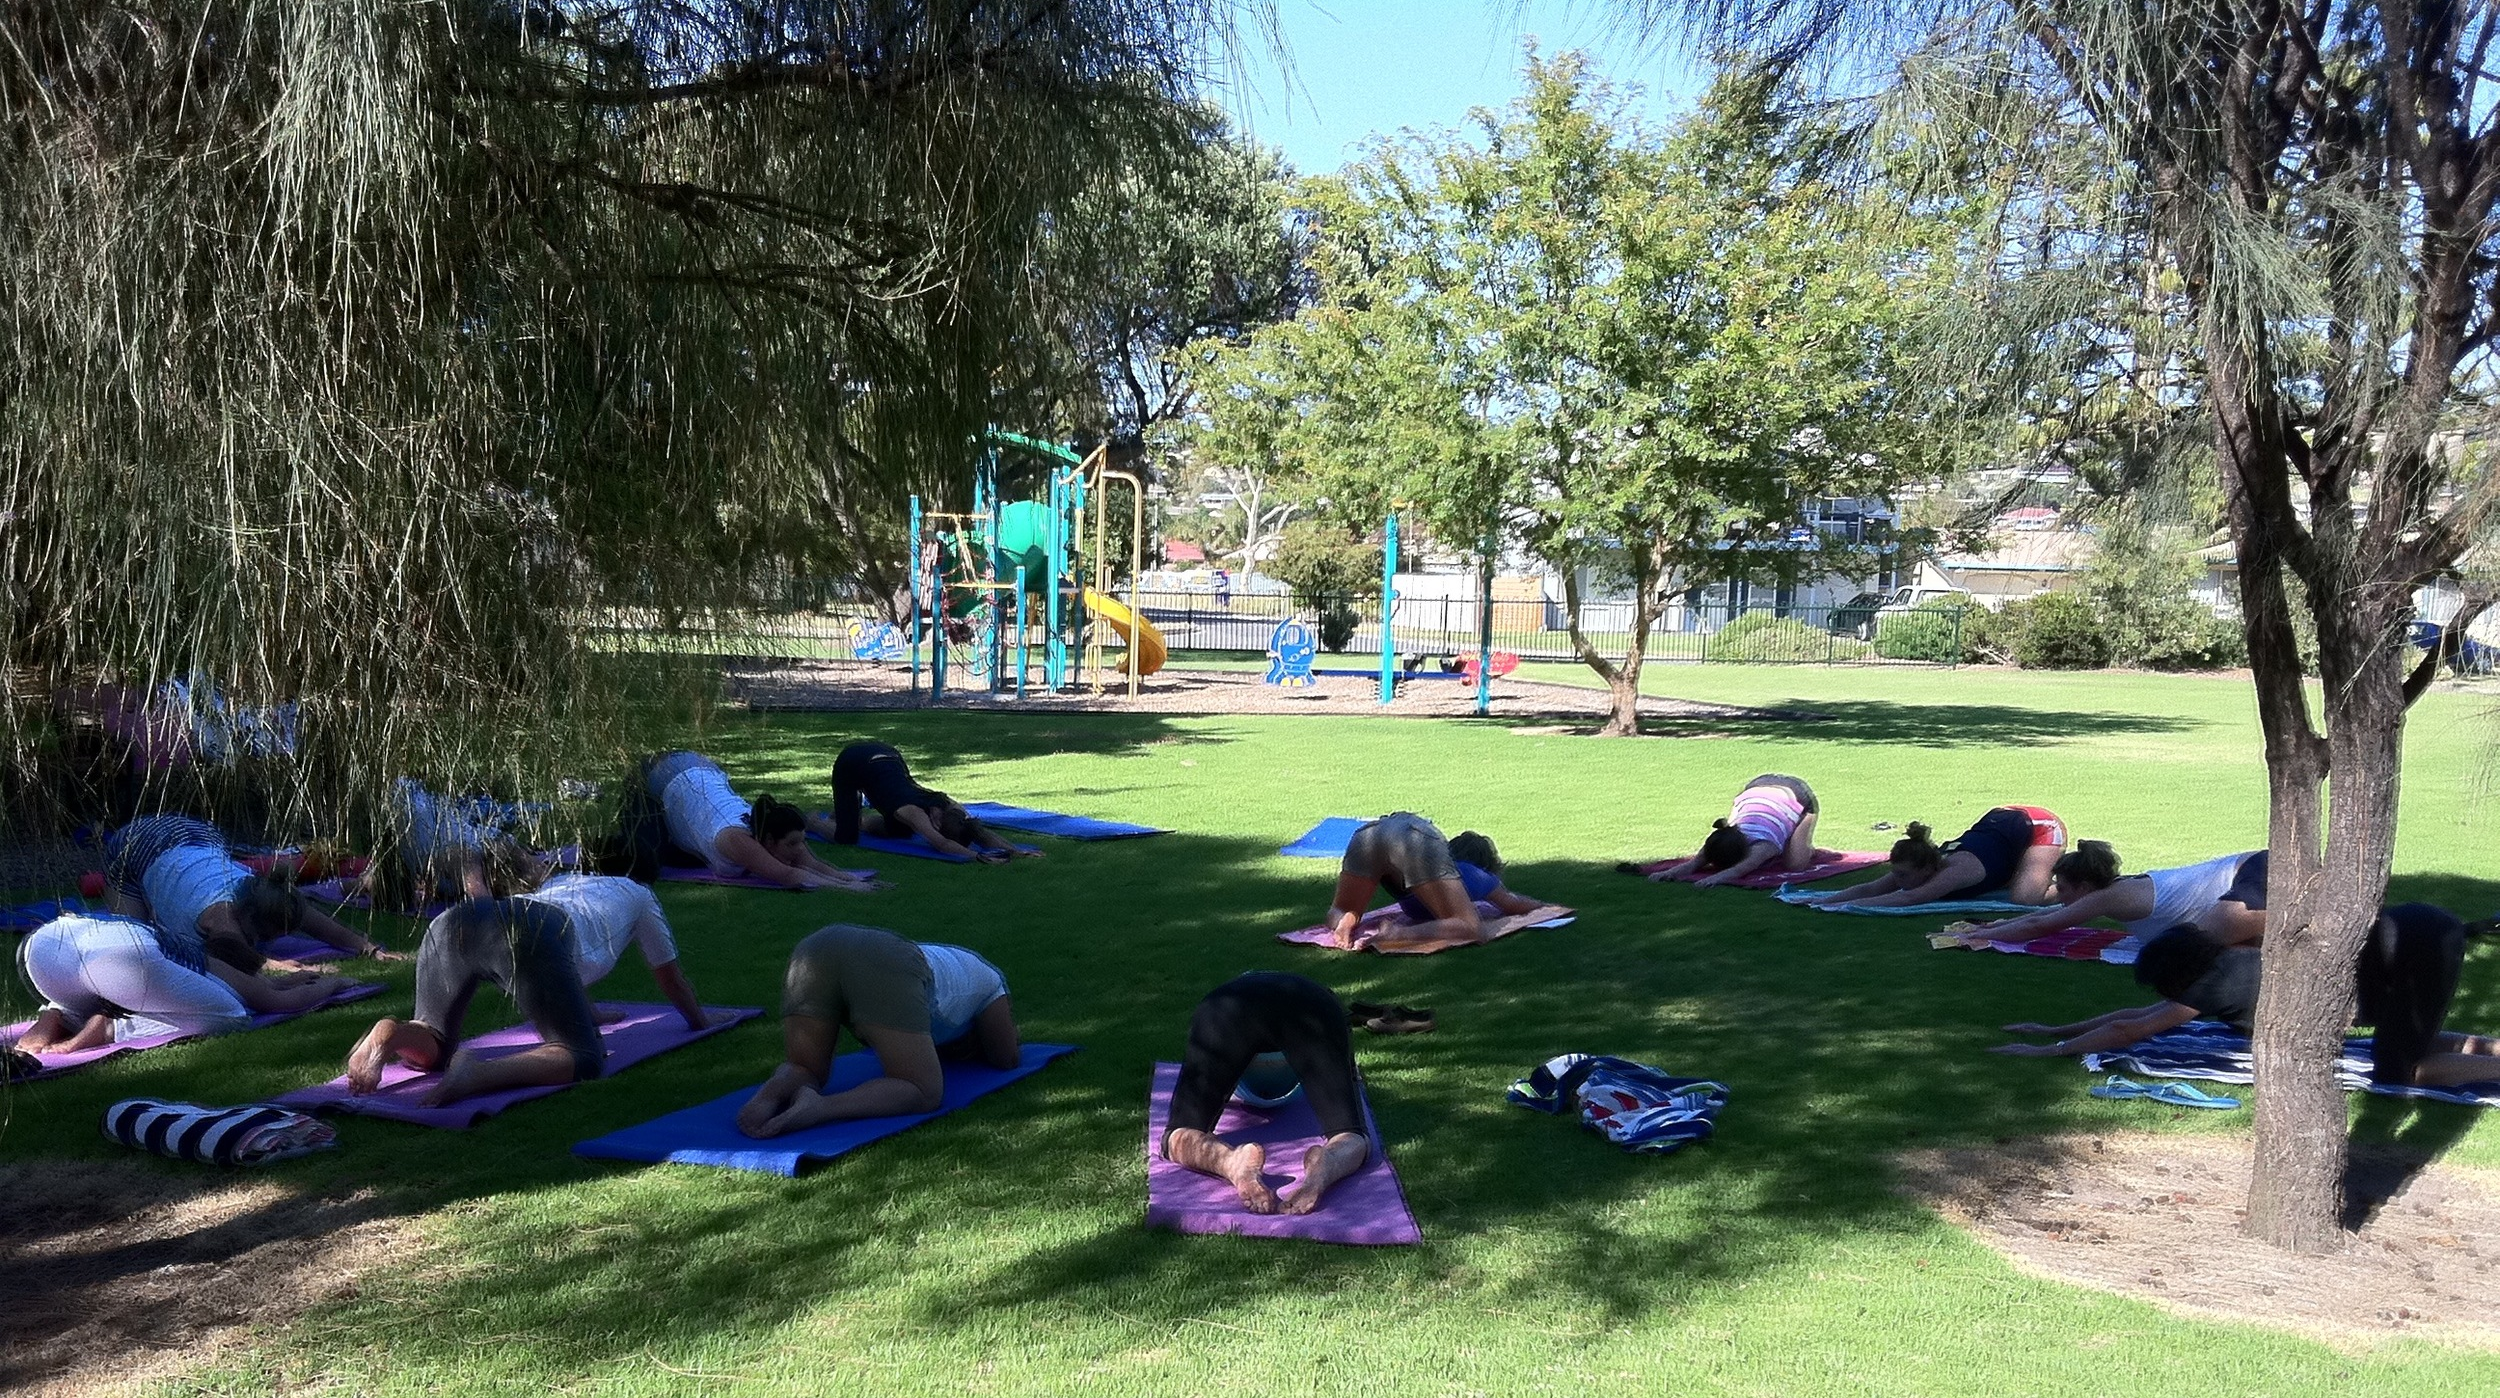 An outdoor yoga class during Eliza Ballard Yoga's last visit to Encounter Bay, Victor Harbour, South Australia